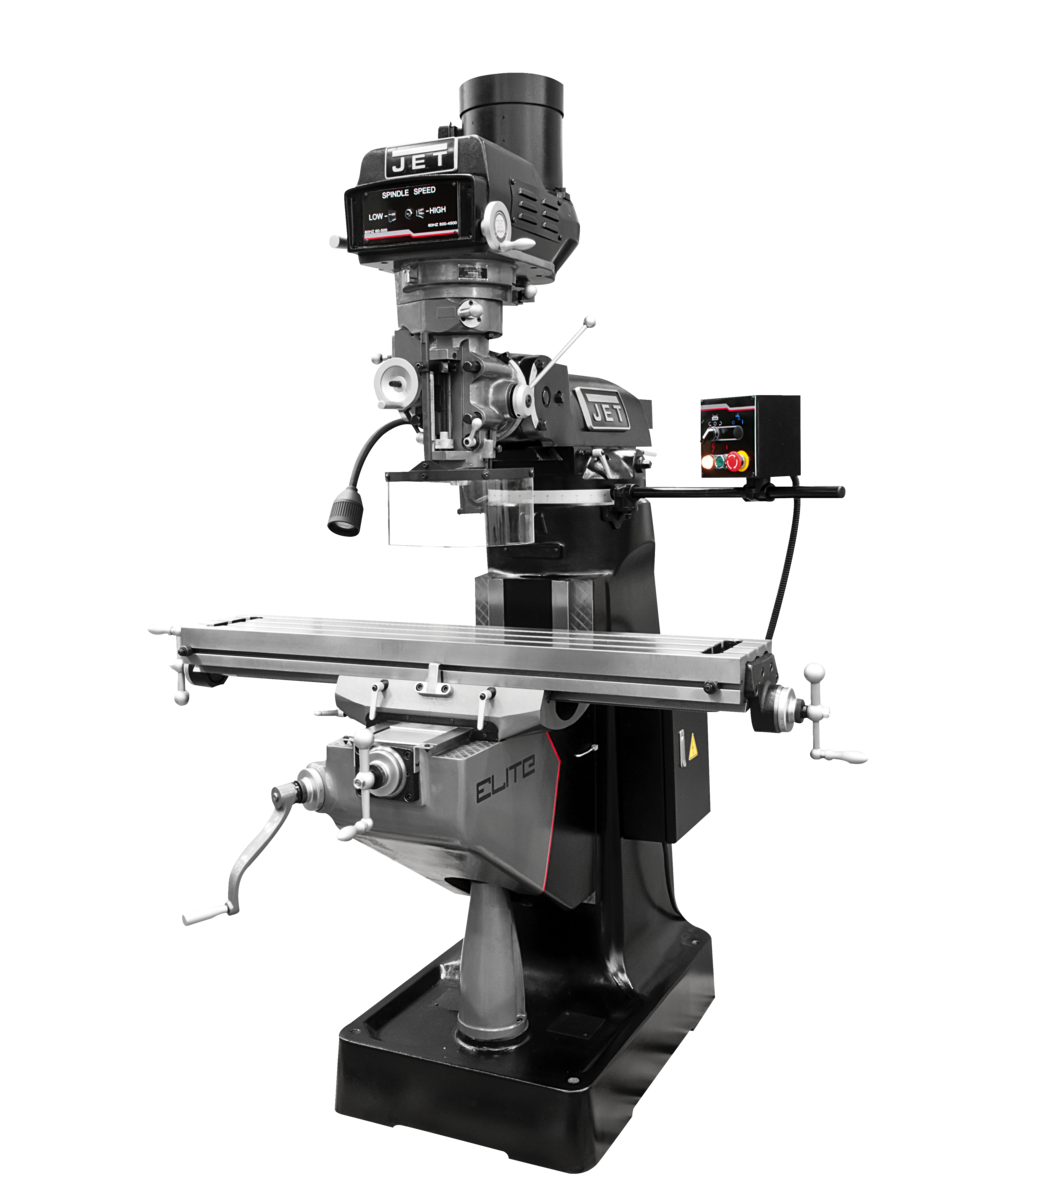 ETM-949 Mill with 3-Axis ACU-RITE 203 (Quill) DRO and X, Y-Axis JET Powerfeeds and USA Made Air Draw Bar